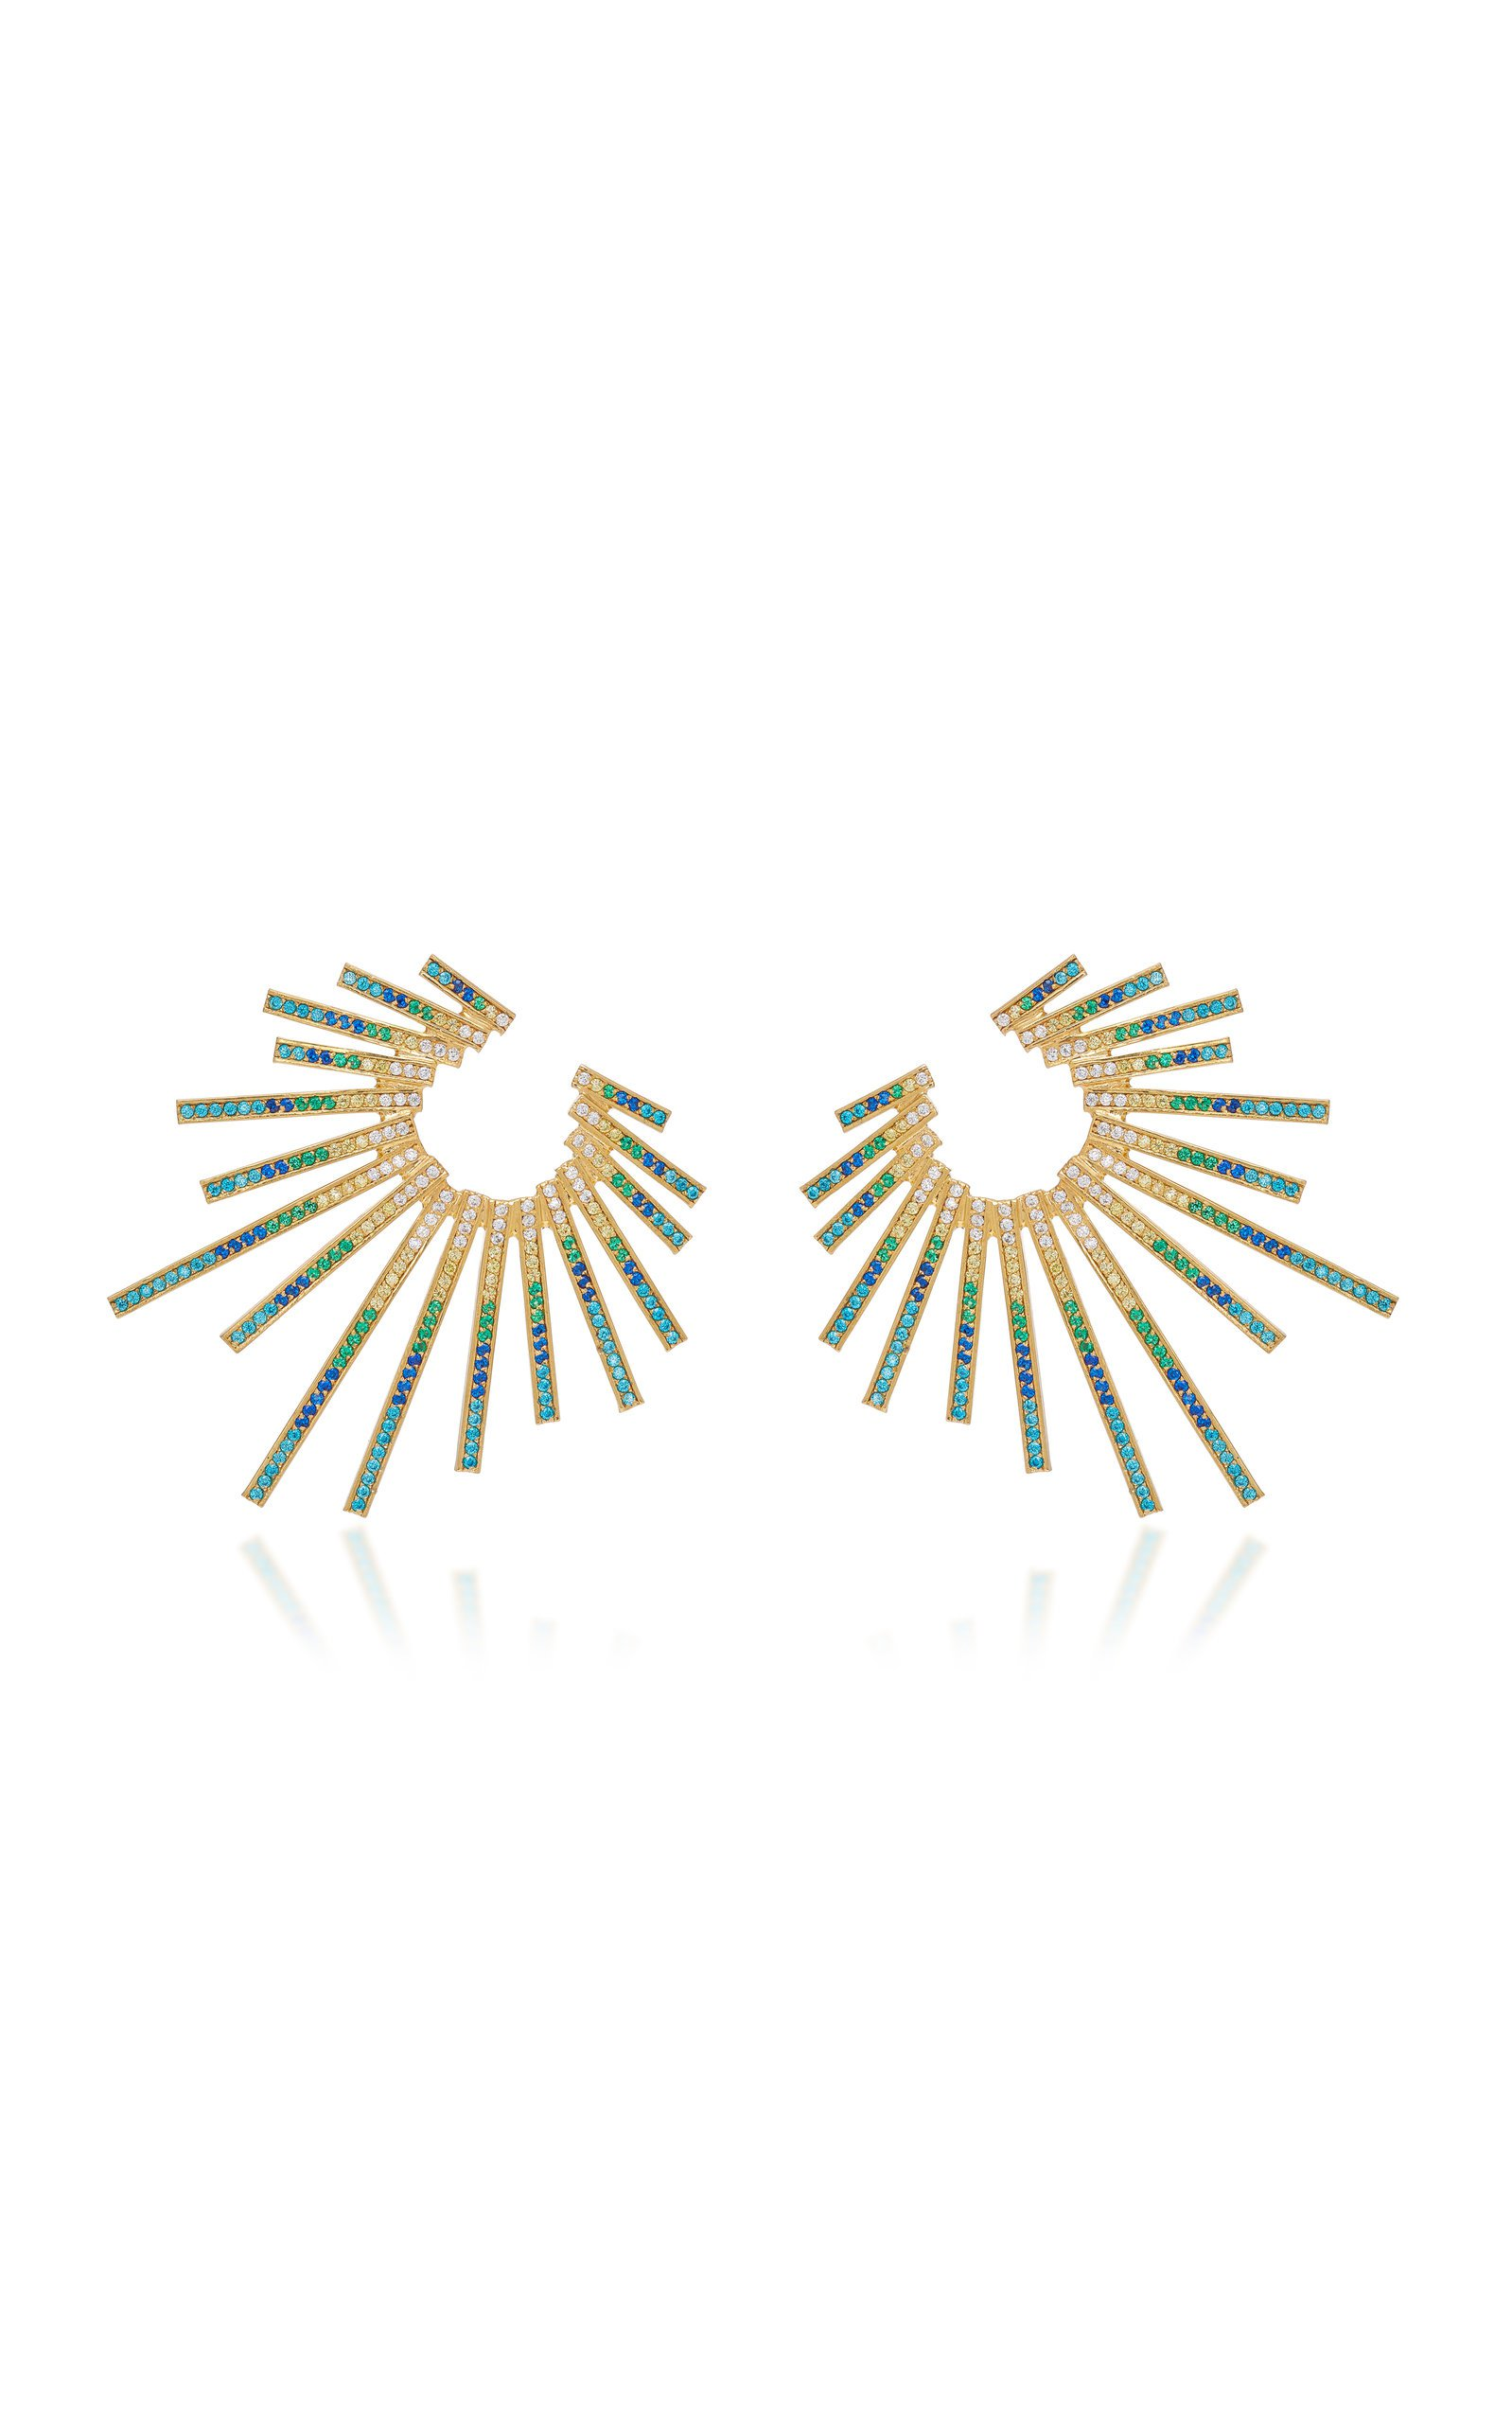 Criss-Cross Gold-Plated Brass and Cubic Zirconia Statement Earrings by Joanna Laura Constantine | Moda Operandi